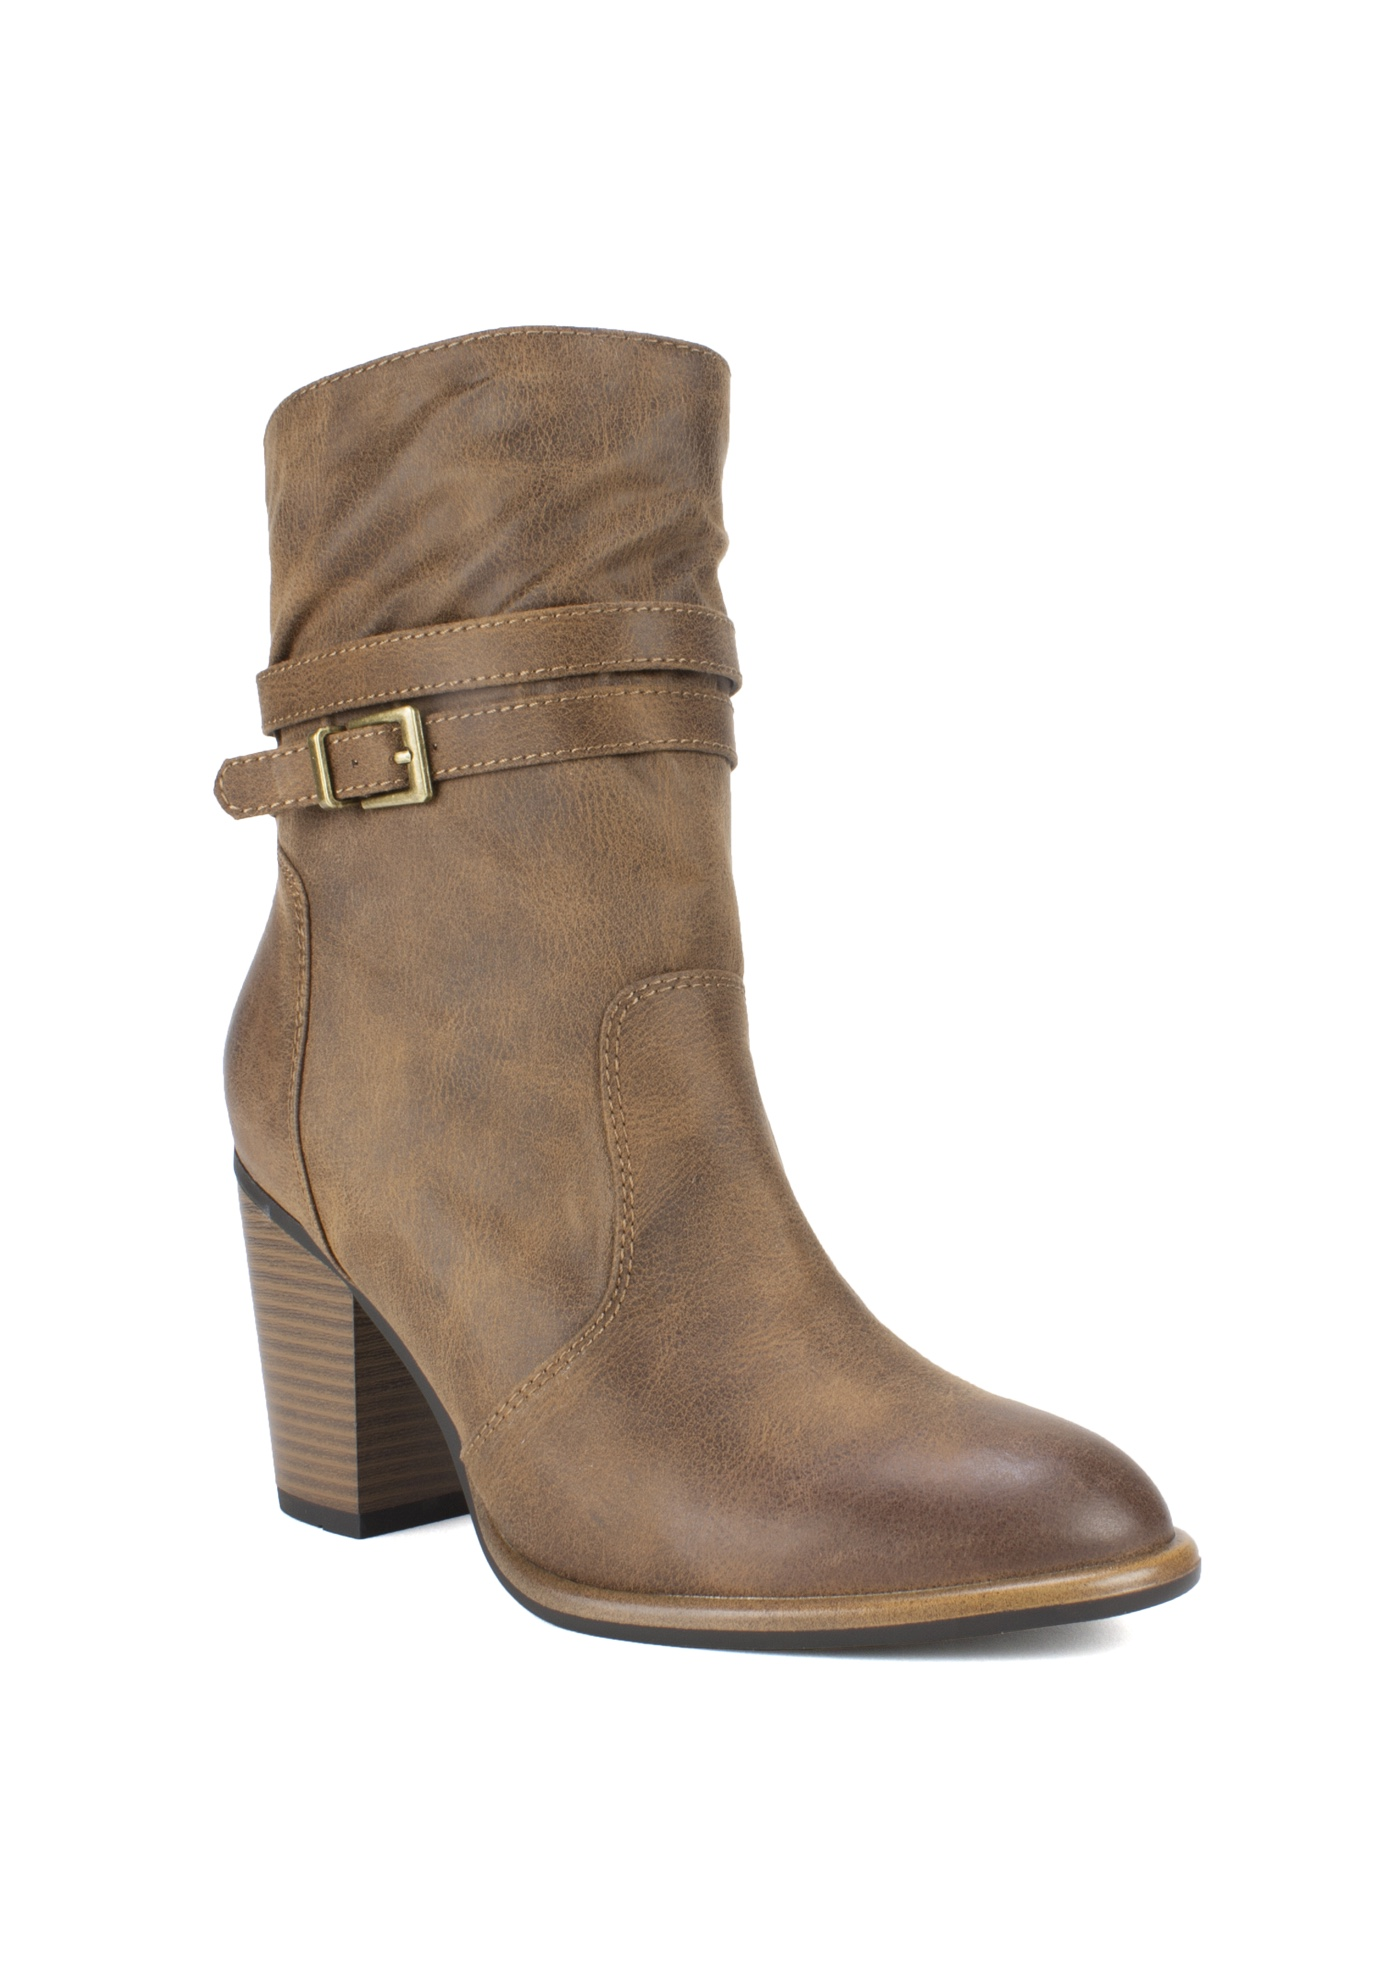 Trust Bootie by White Mountain,